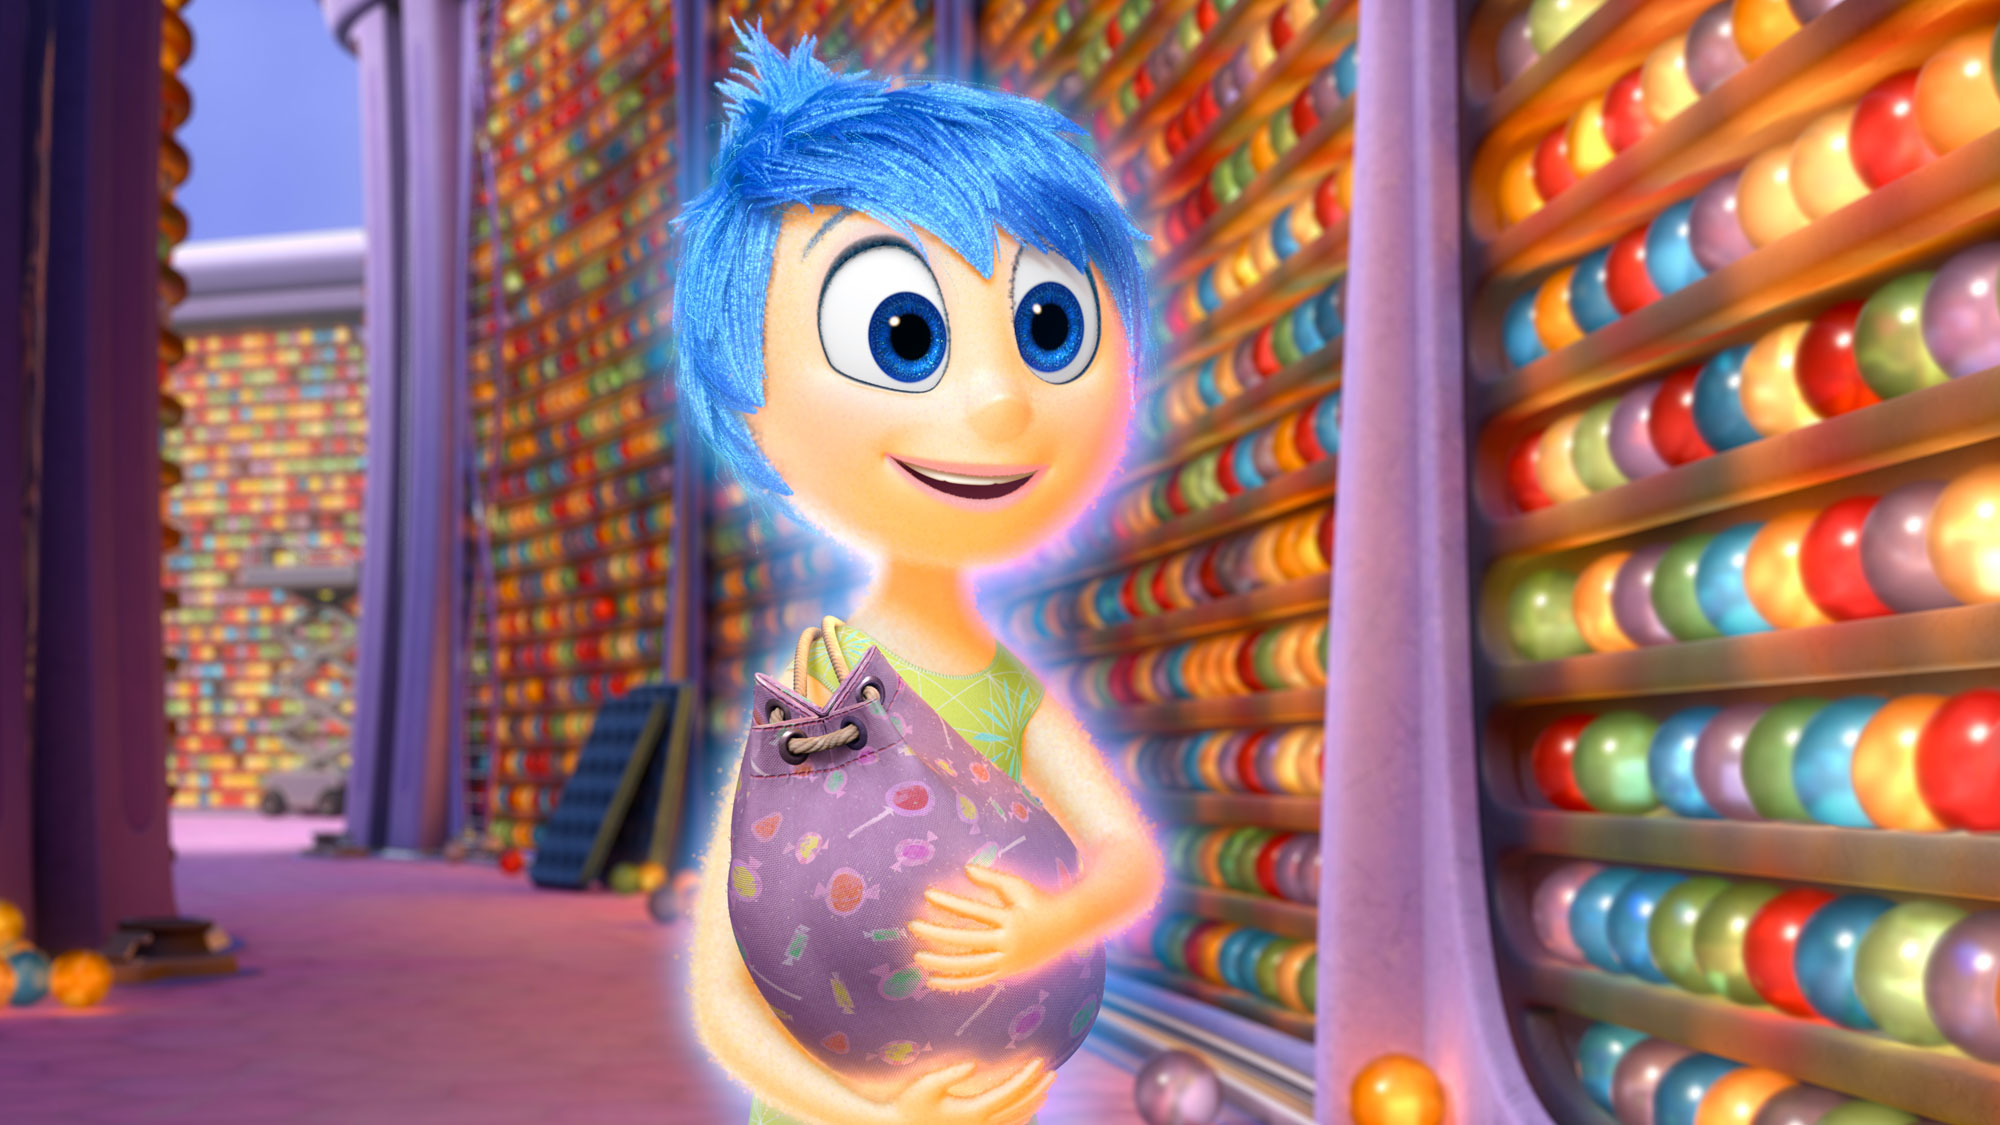 Disney Pixar Vice Versa Inside Out